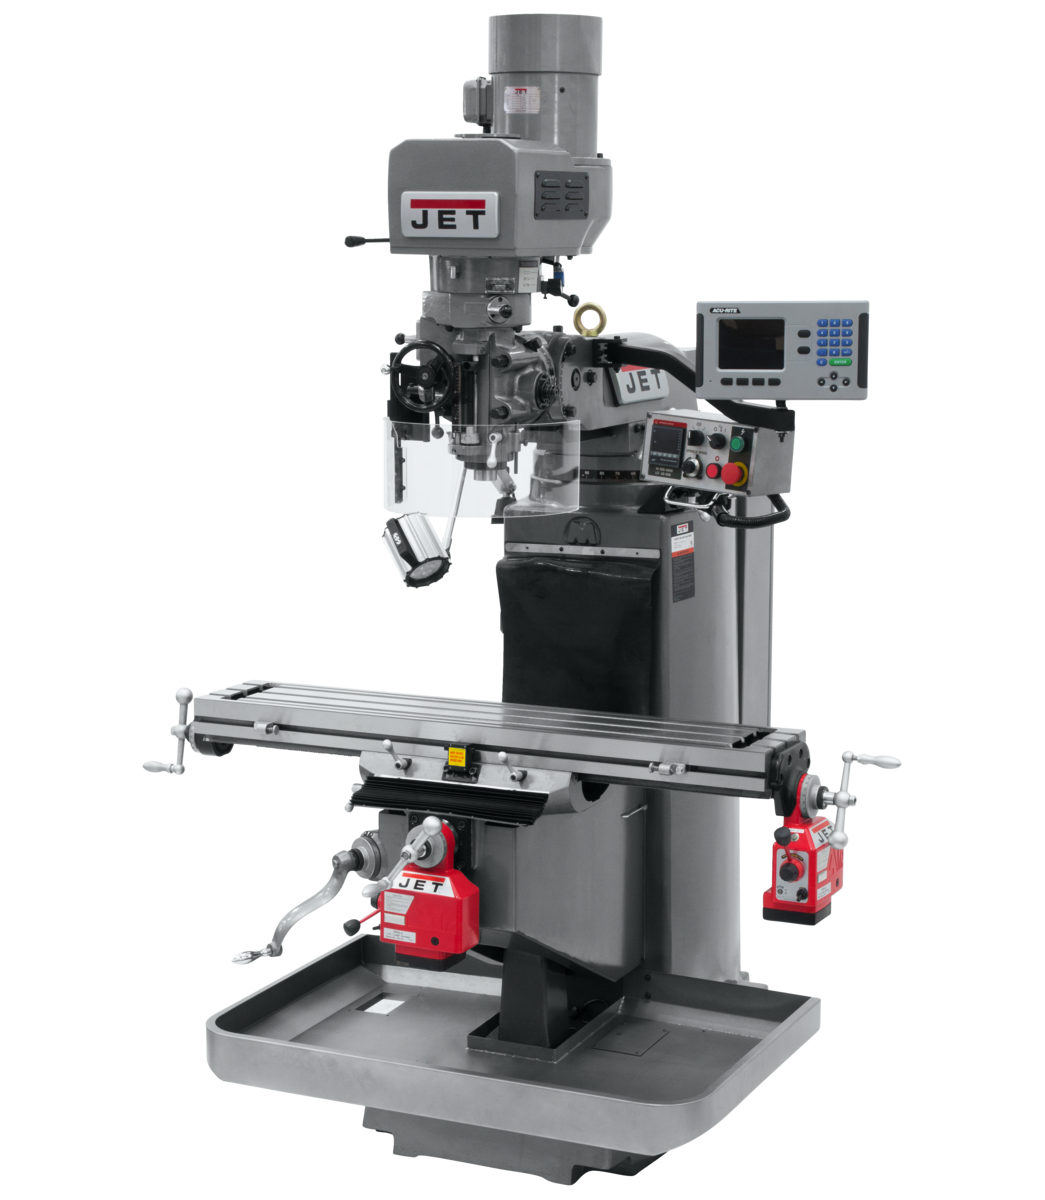 JTM-949EVS Mill With 3-Axis Acu-Rite 203 DRO (Quill) With X and Y-Axis Powerfeeds